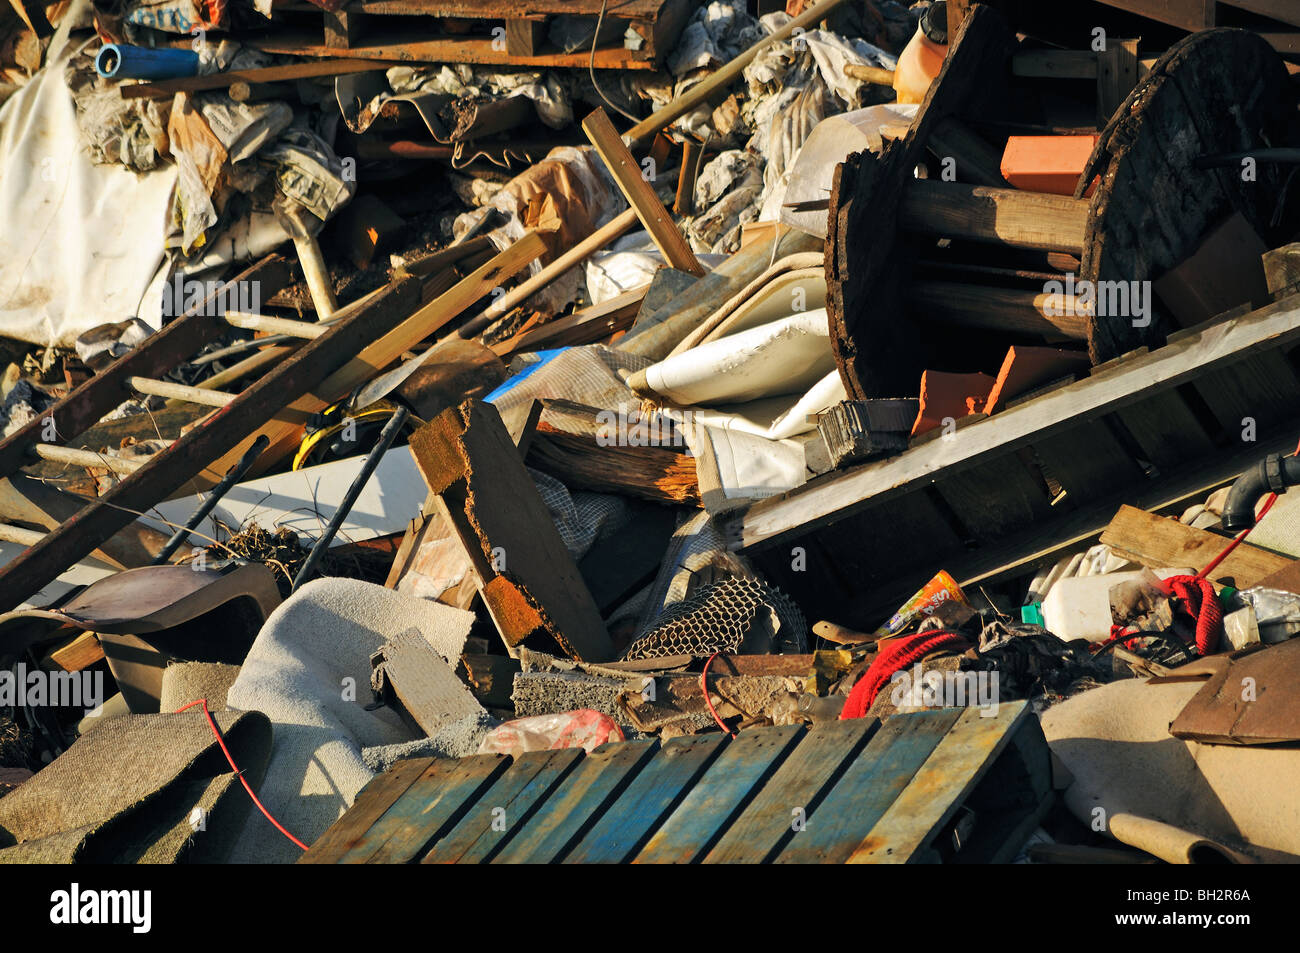 rubbish left by fly tippers near bristol, england, uk - Stock Image